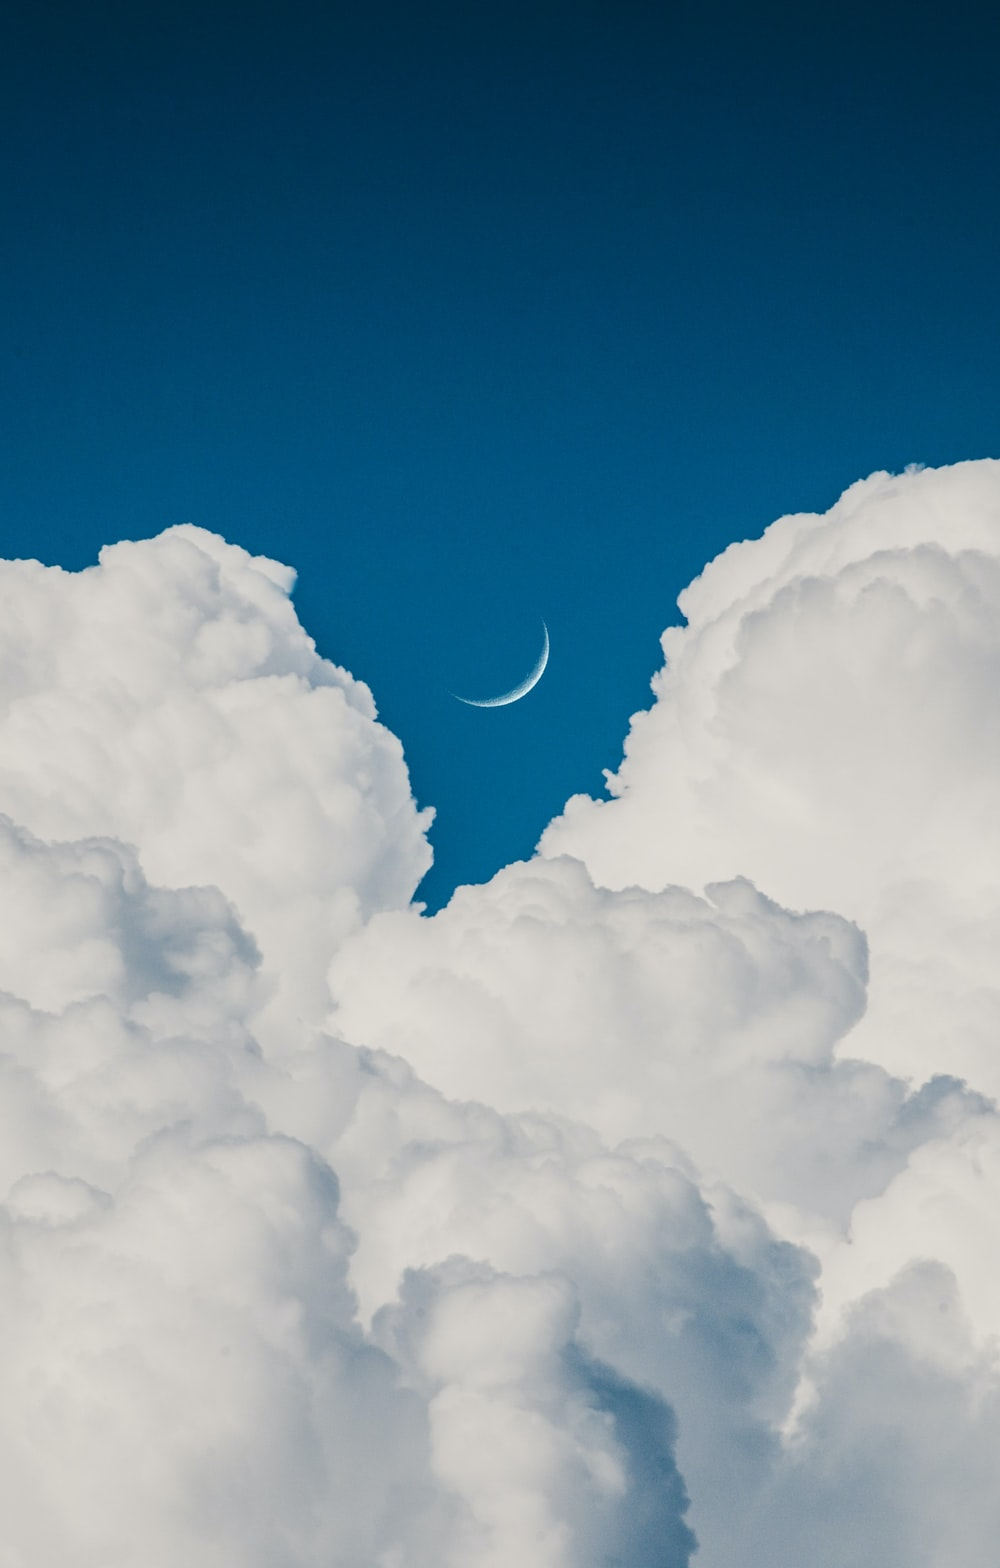 moon view from clouds